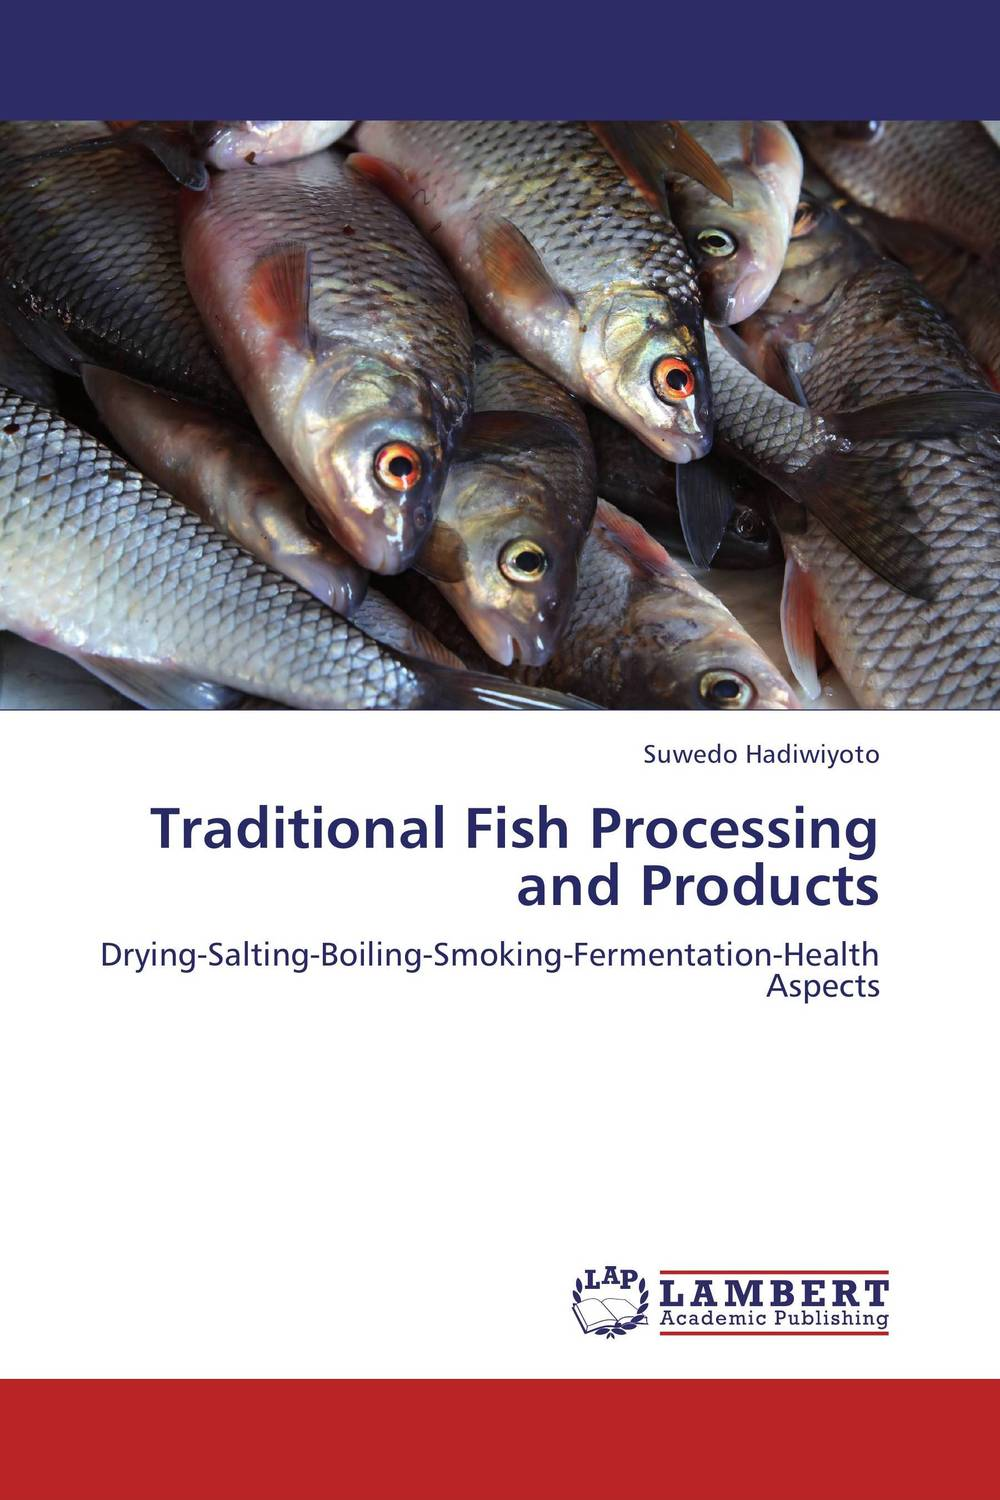 Traditional Fish Processing and Products